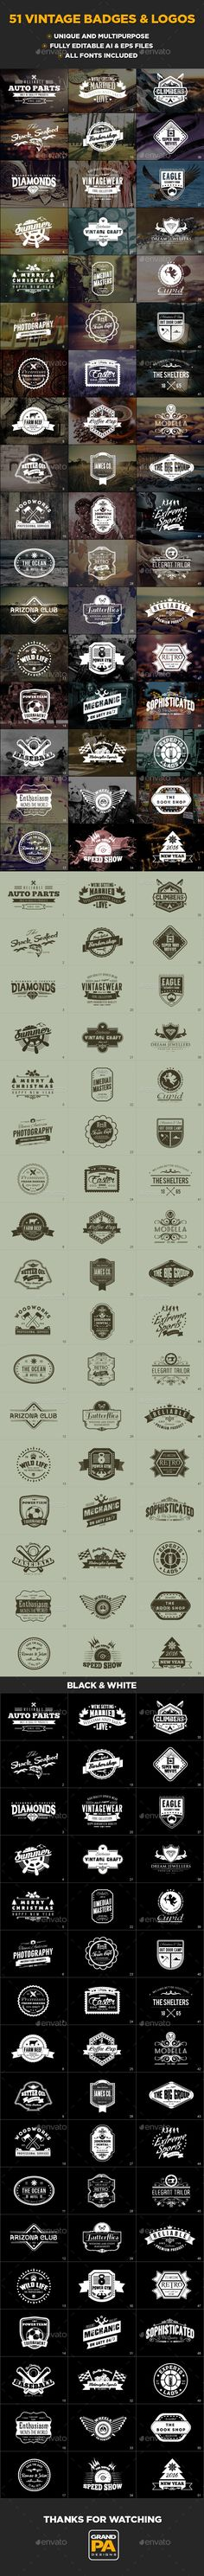 51 Vintage Badges and Logos #logo #typography Download : https://graphicriver.net/item/51-vintage-badges-and-logos/15348120?ref=pxcr